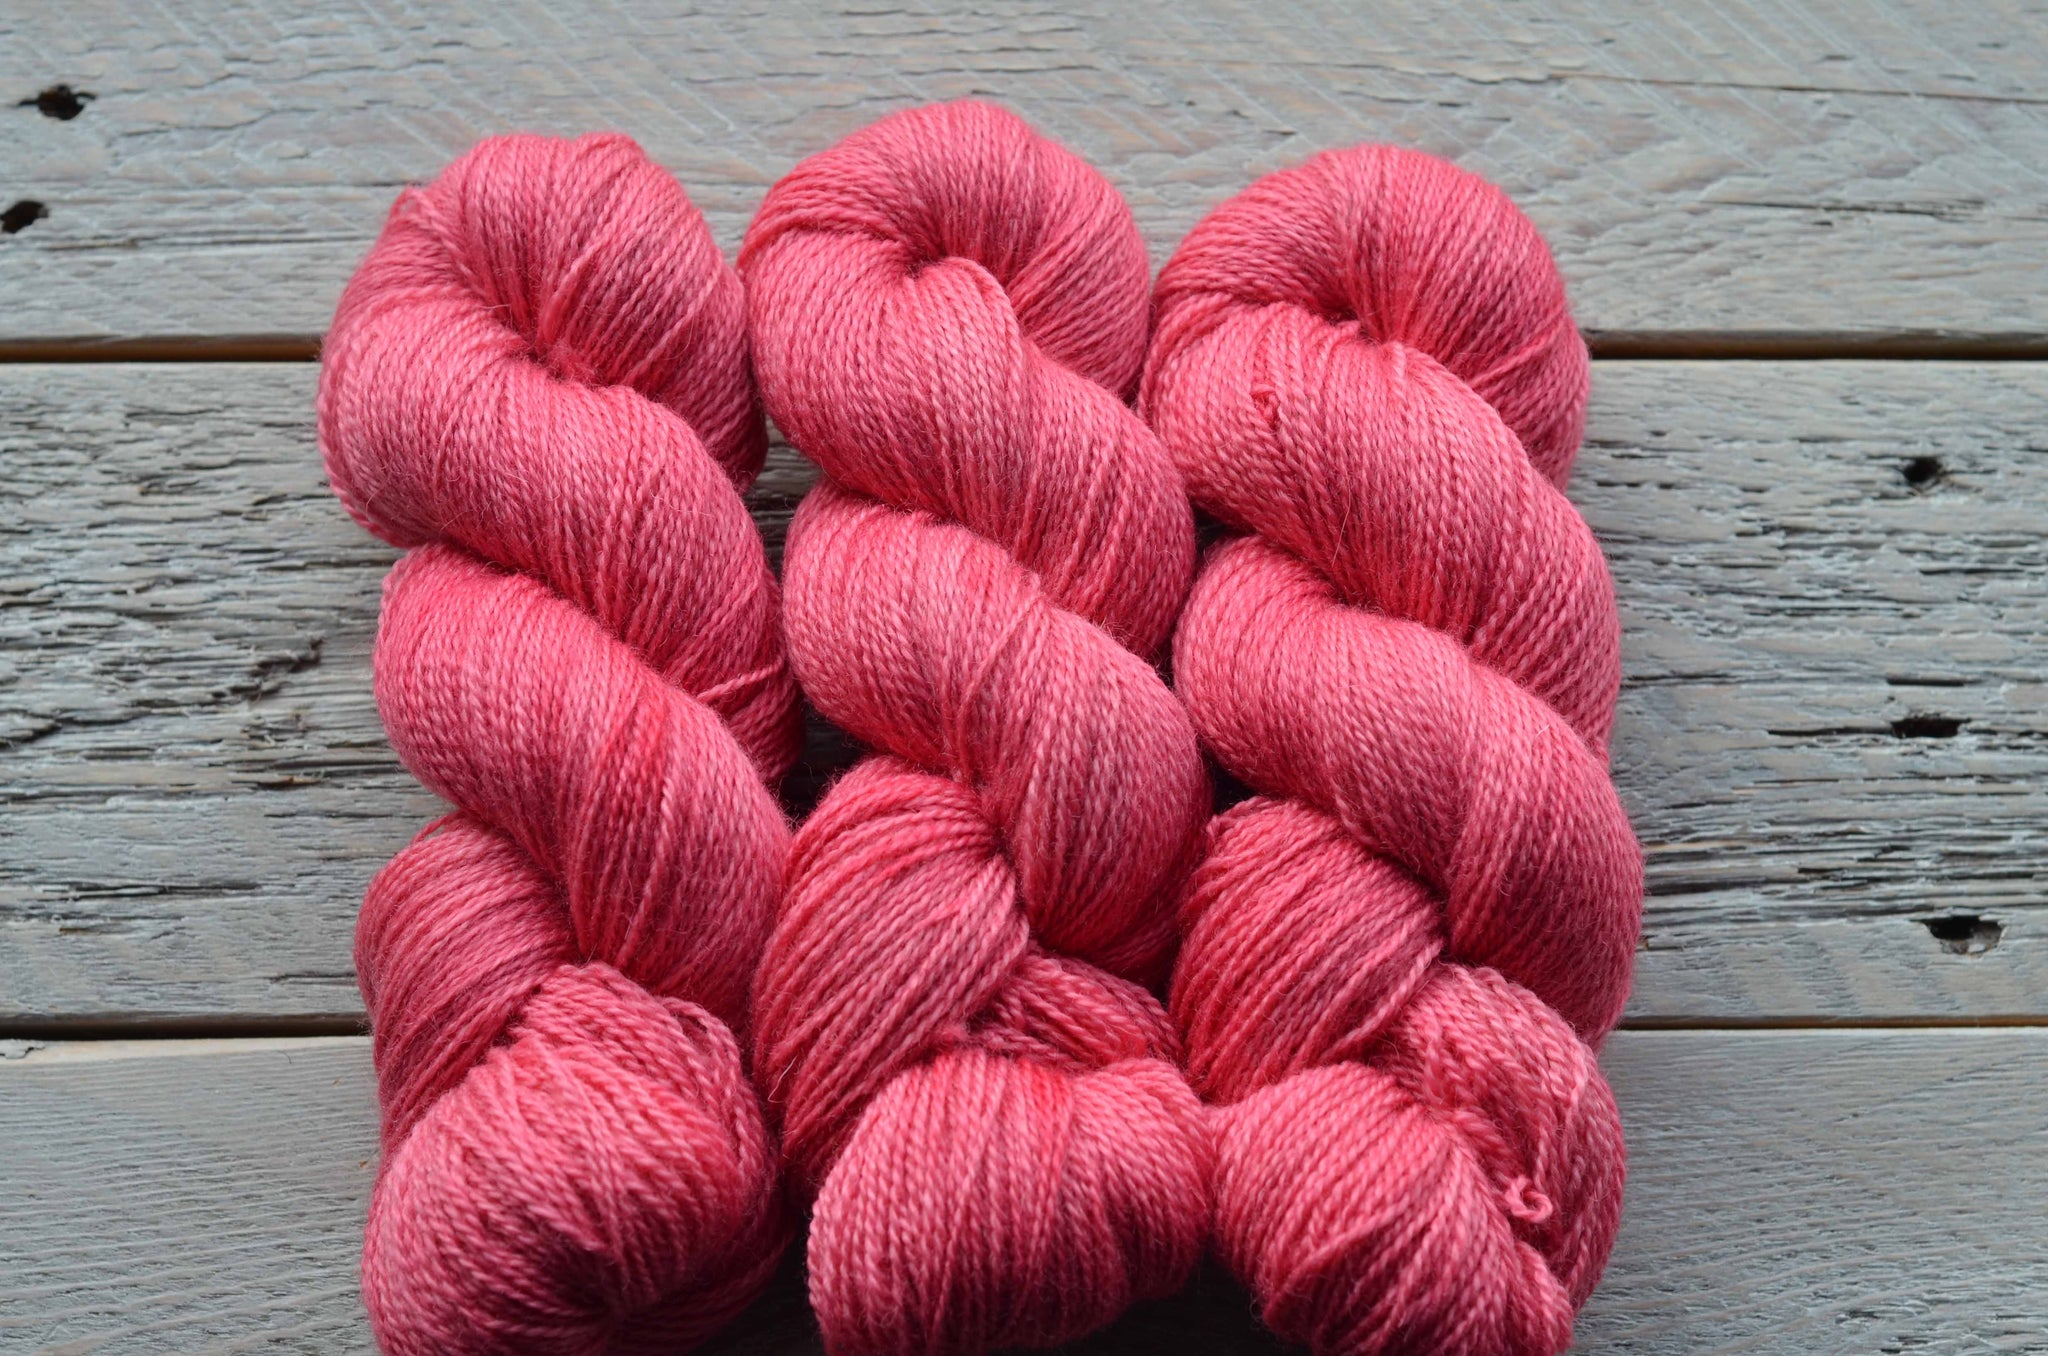 Rosehip on BFL Fingering